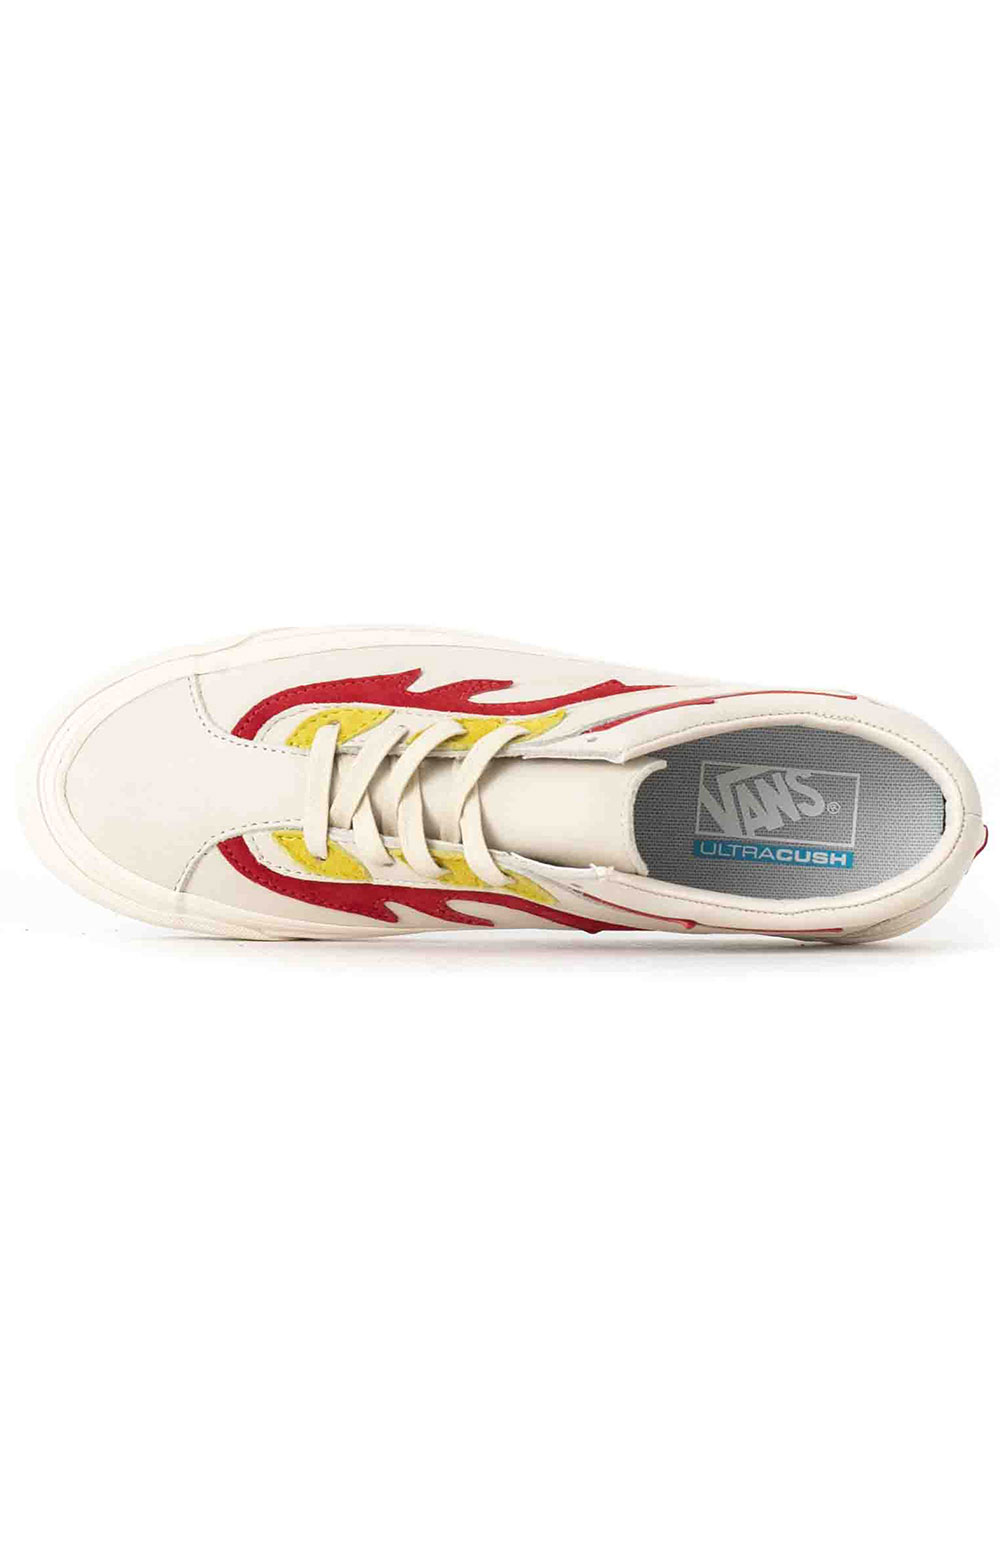 (UVR1BW) Flamethrower Bold Ni FT Shoes - Antique White/Red 2